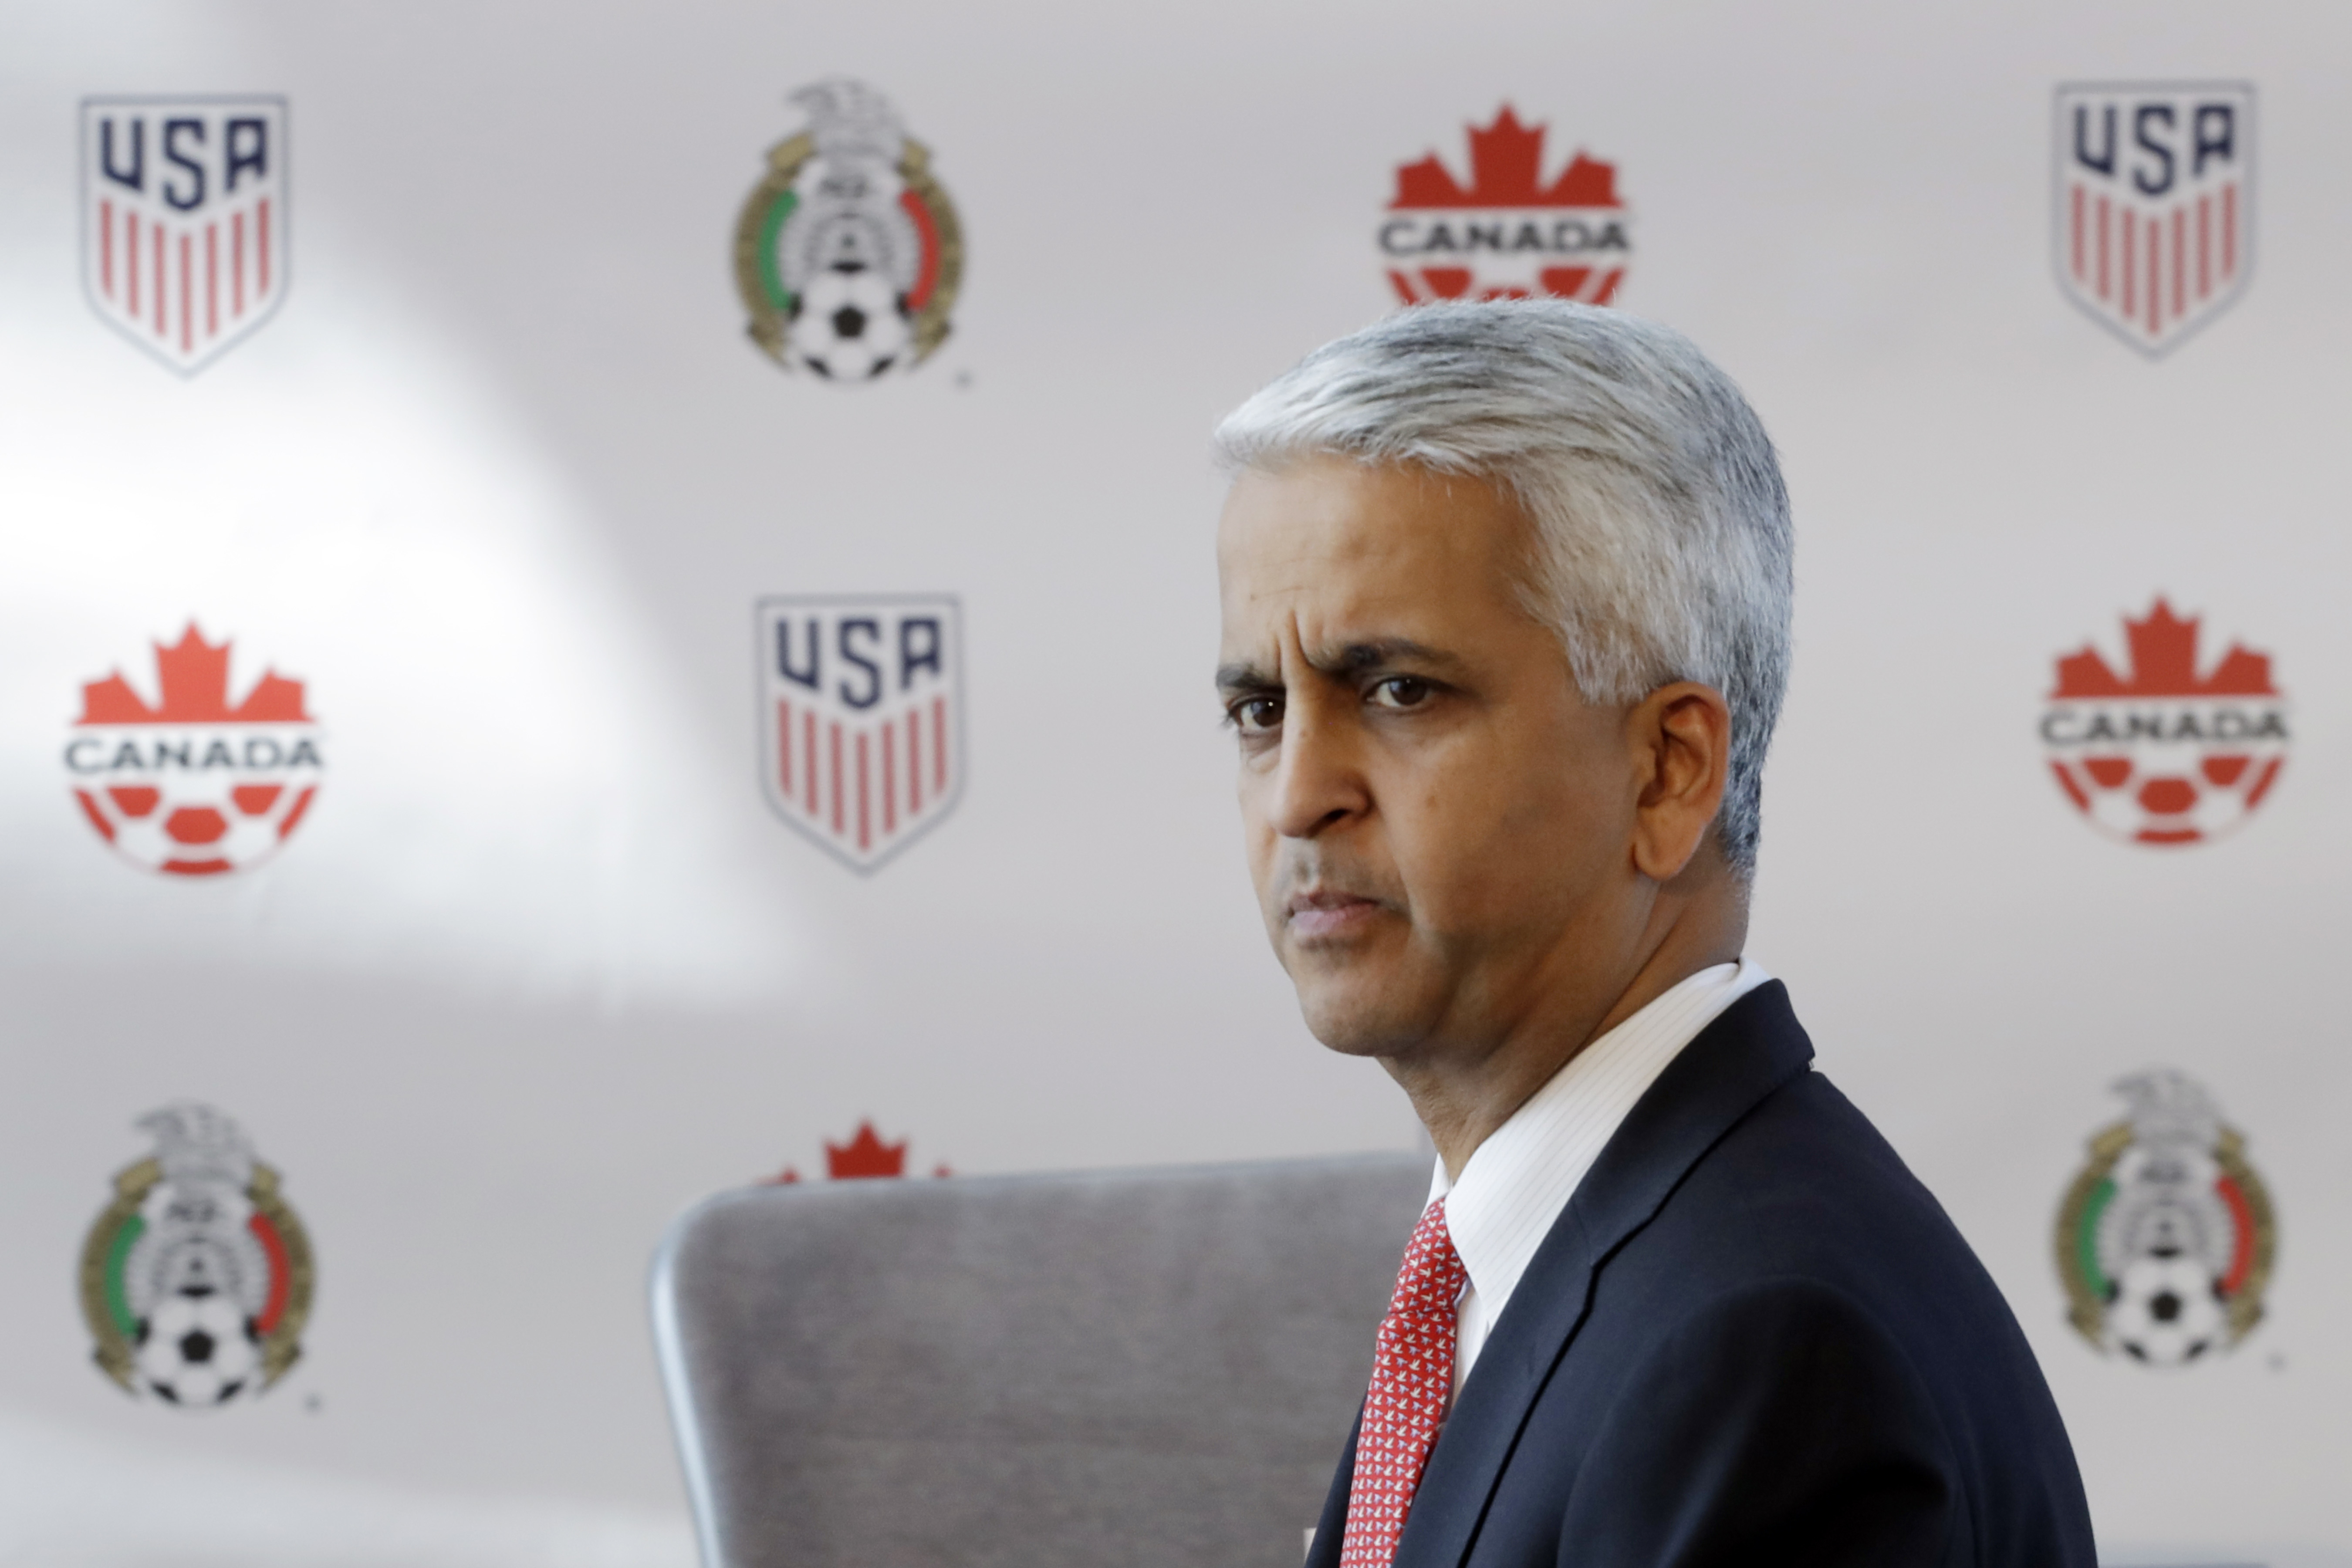 Sunil Gulati, President of the United States Soccer Federation, attends a news conference, Monday, April 10, 2017, in New York. The United States, Mexico and Canada announced a joint bid for the 2026 World Cup. (AP Photo/Mark Lennihan)